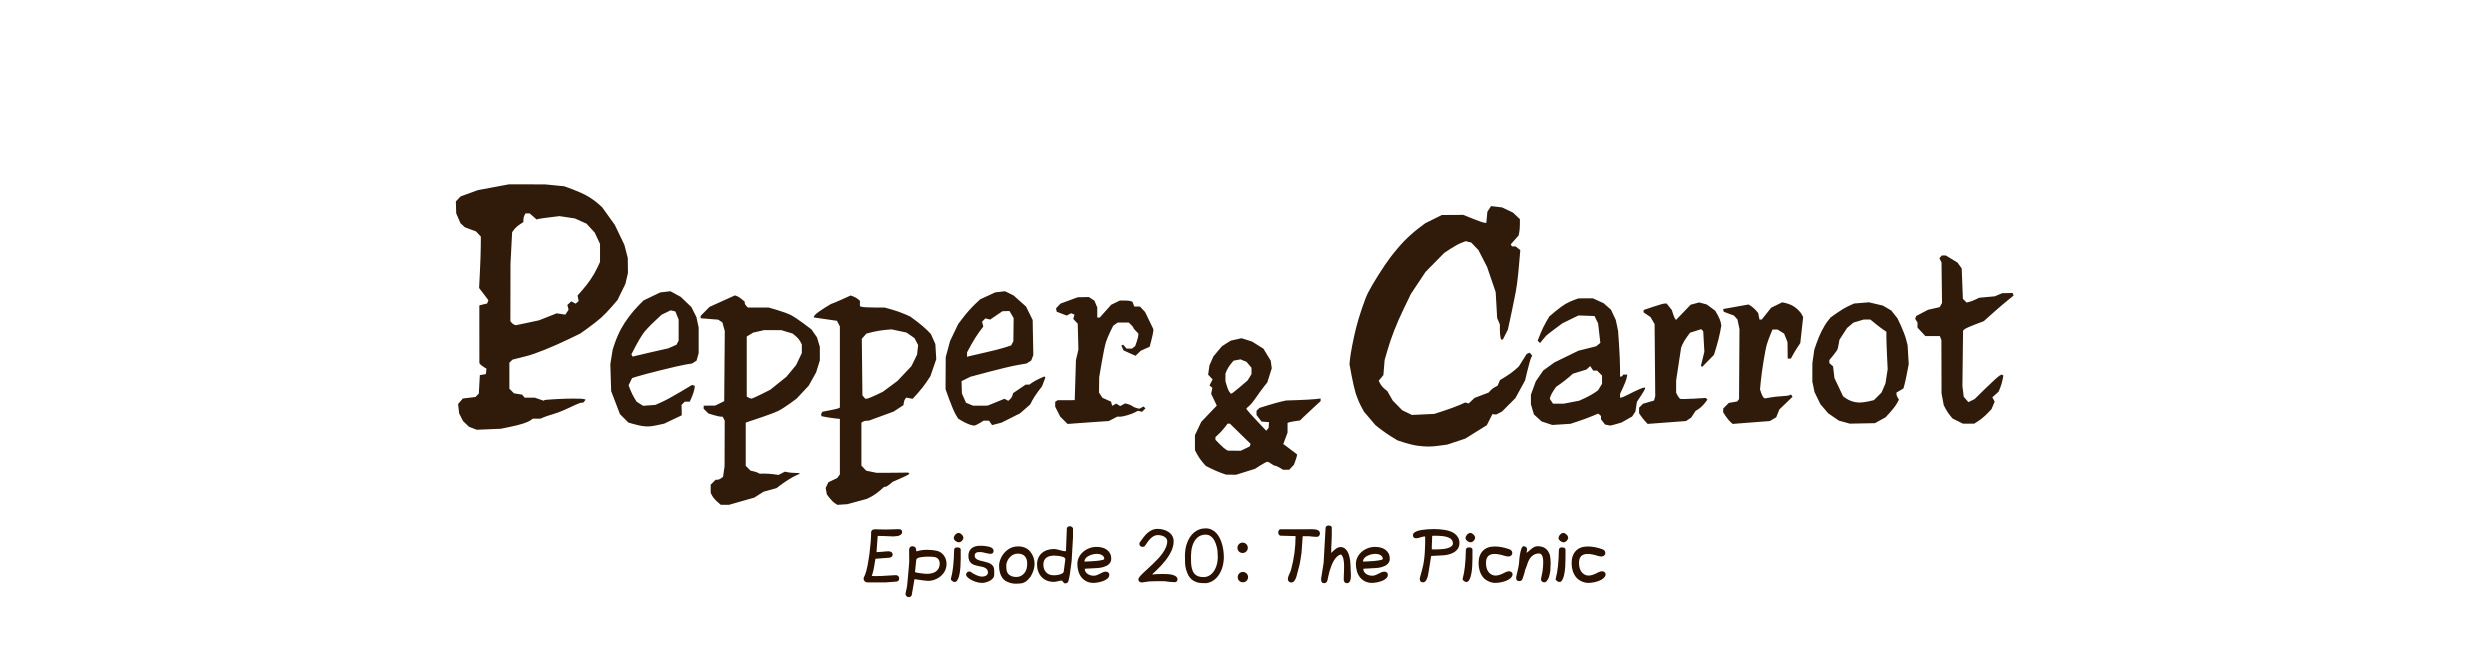 Episode 20: The Picnic